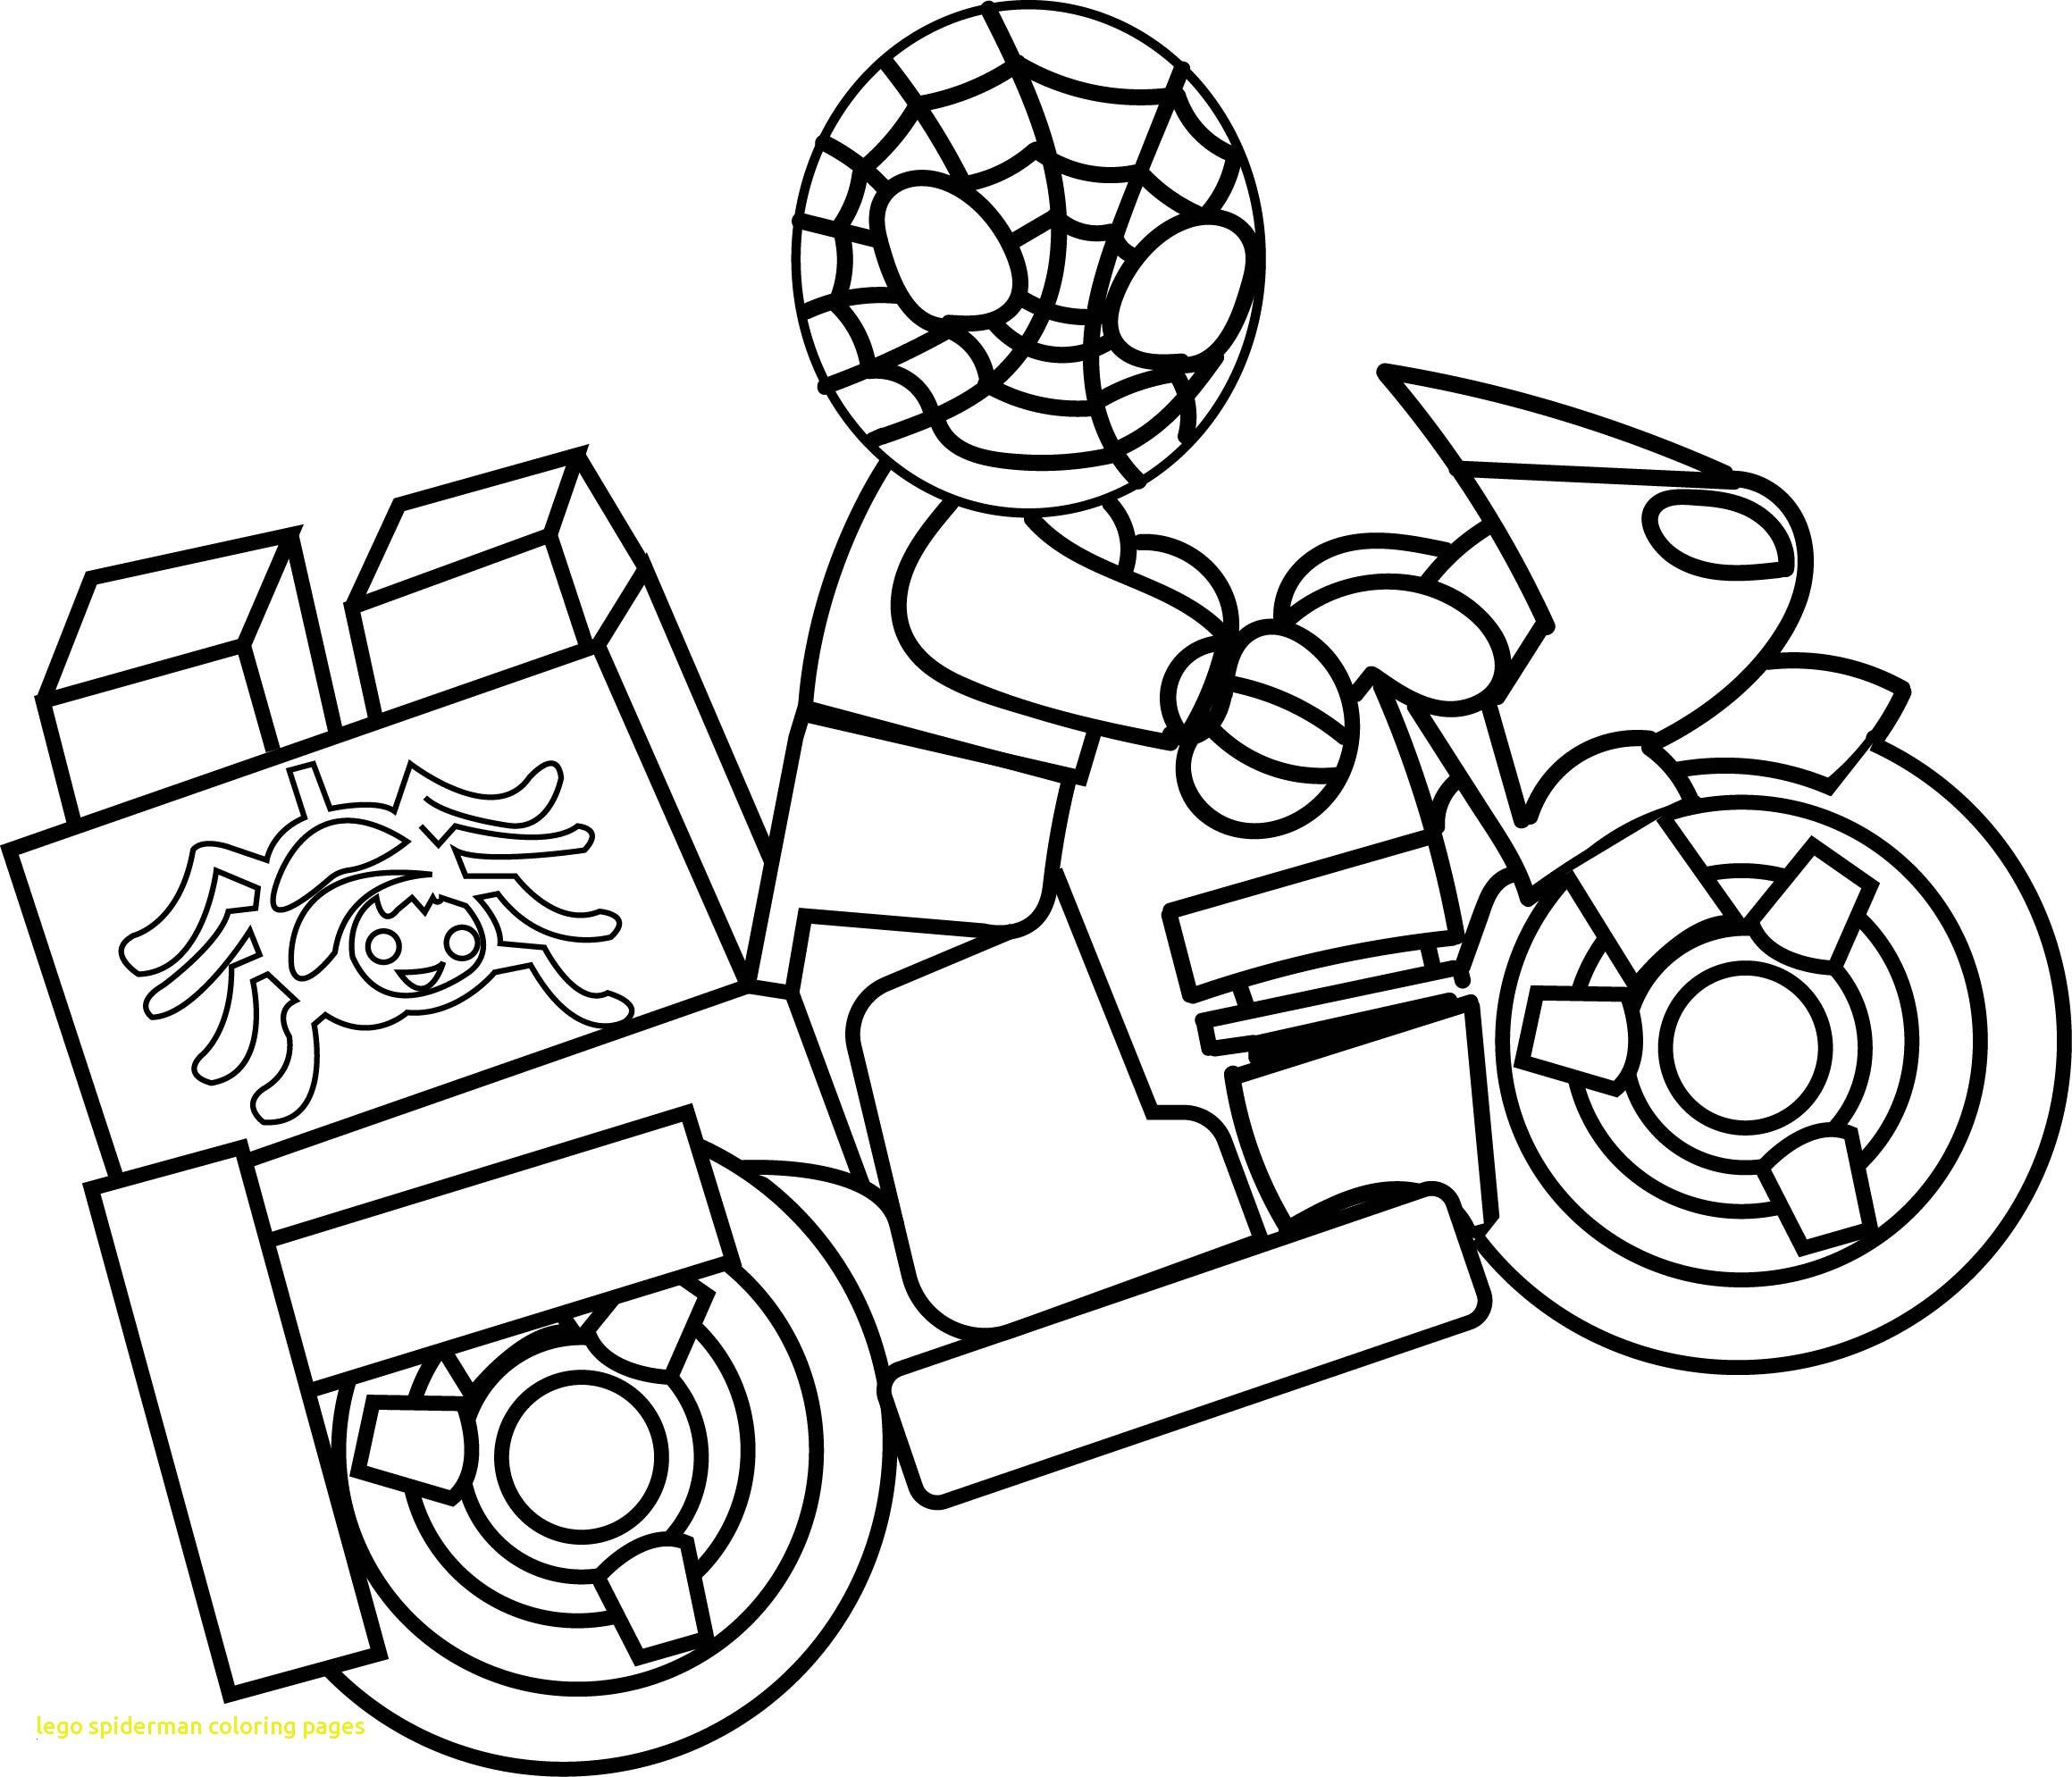 Printable Spiderman Coloring Pages Easy And Fun Spiderman Coloring Cartoon Coloring Pages Avengers Coloring Pages